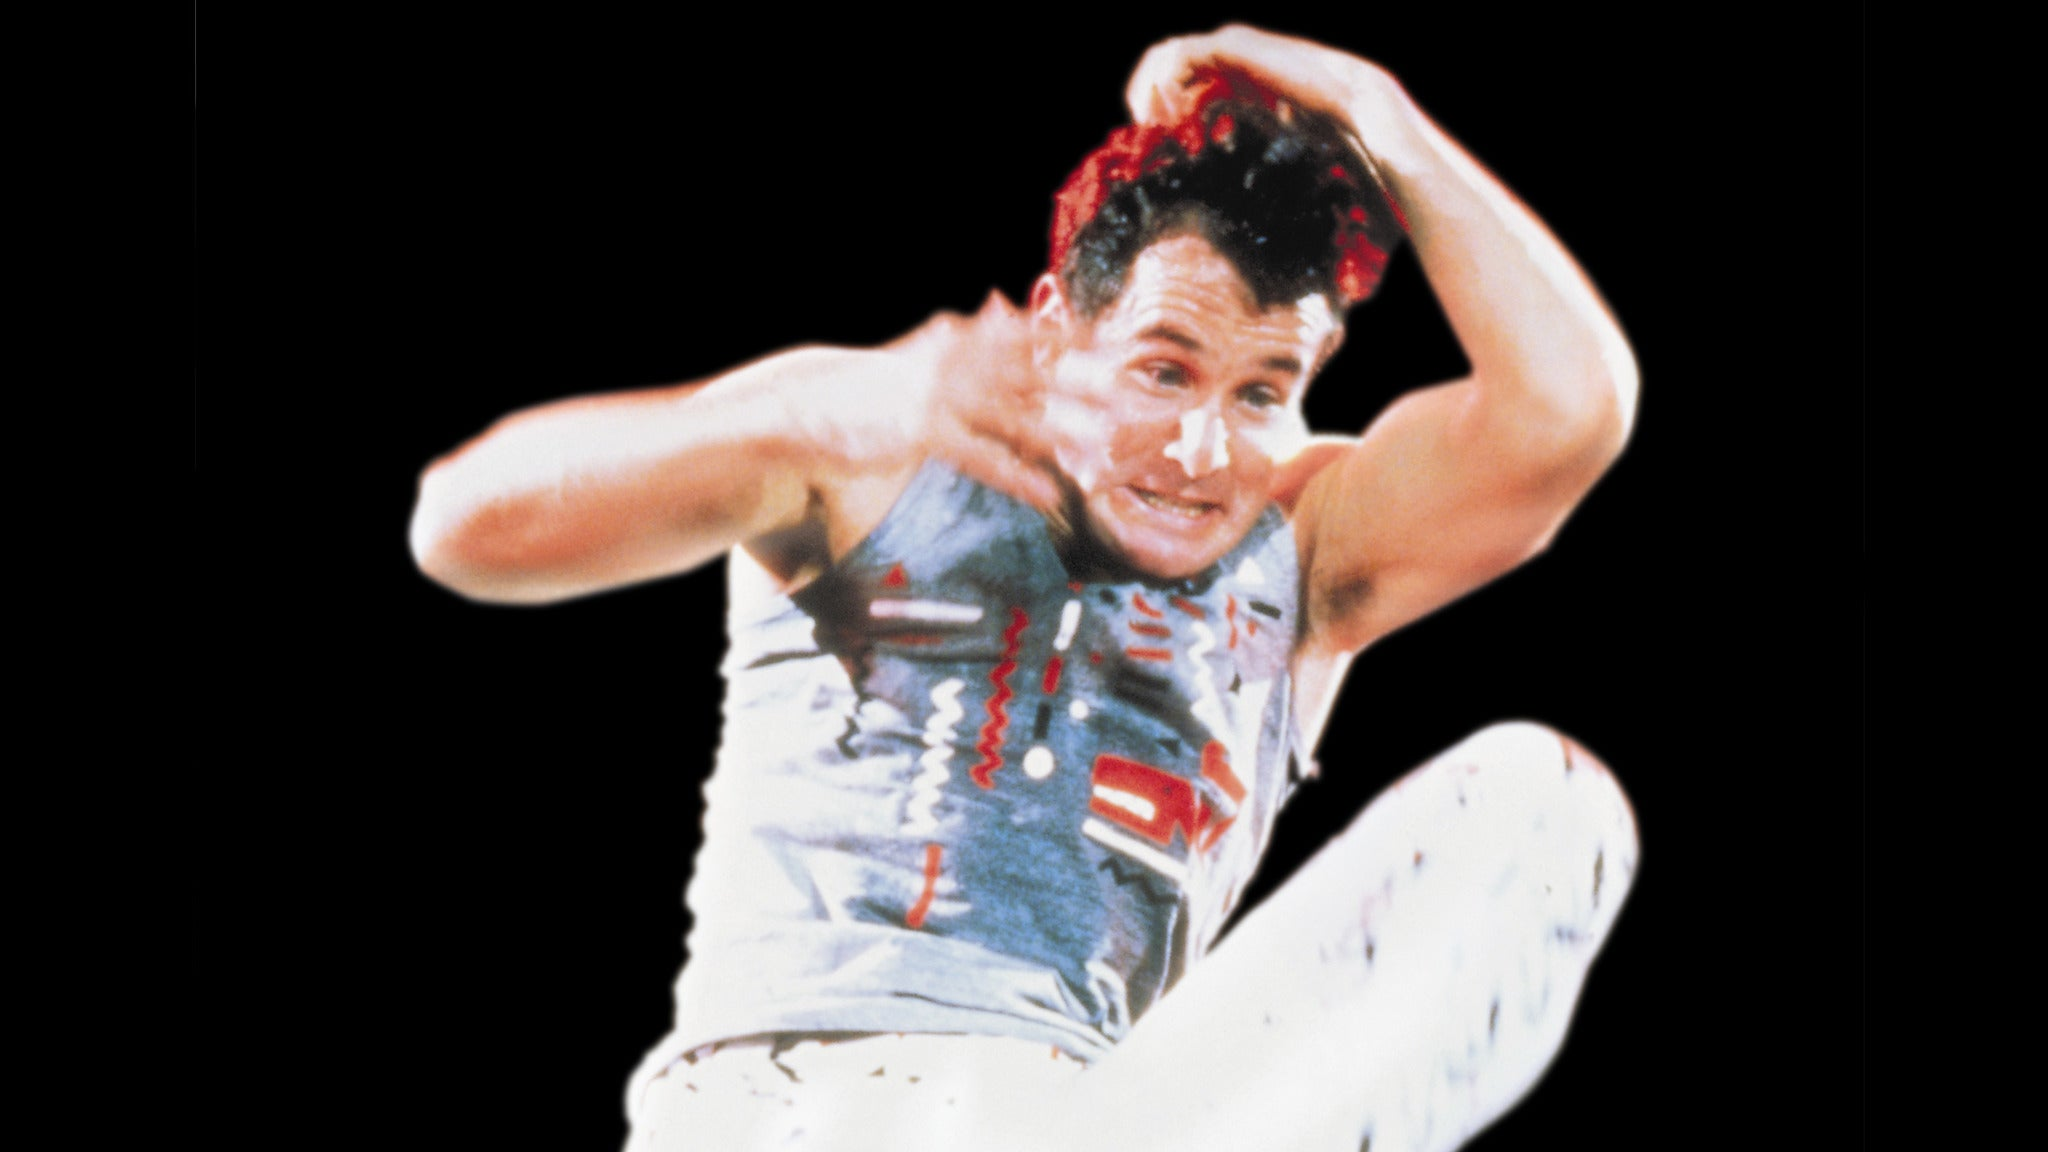 Johnny Clegg - The Final Journey at Balboa Theatre